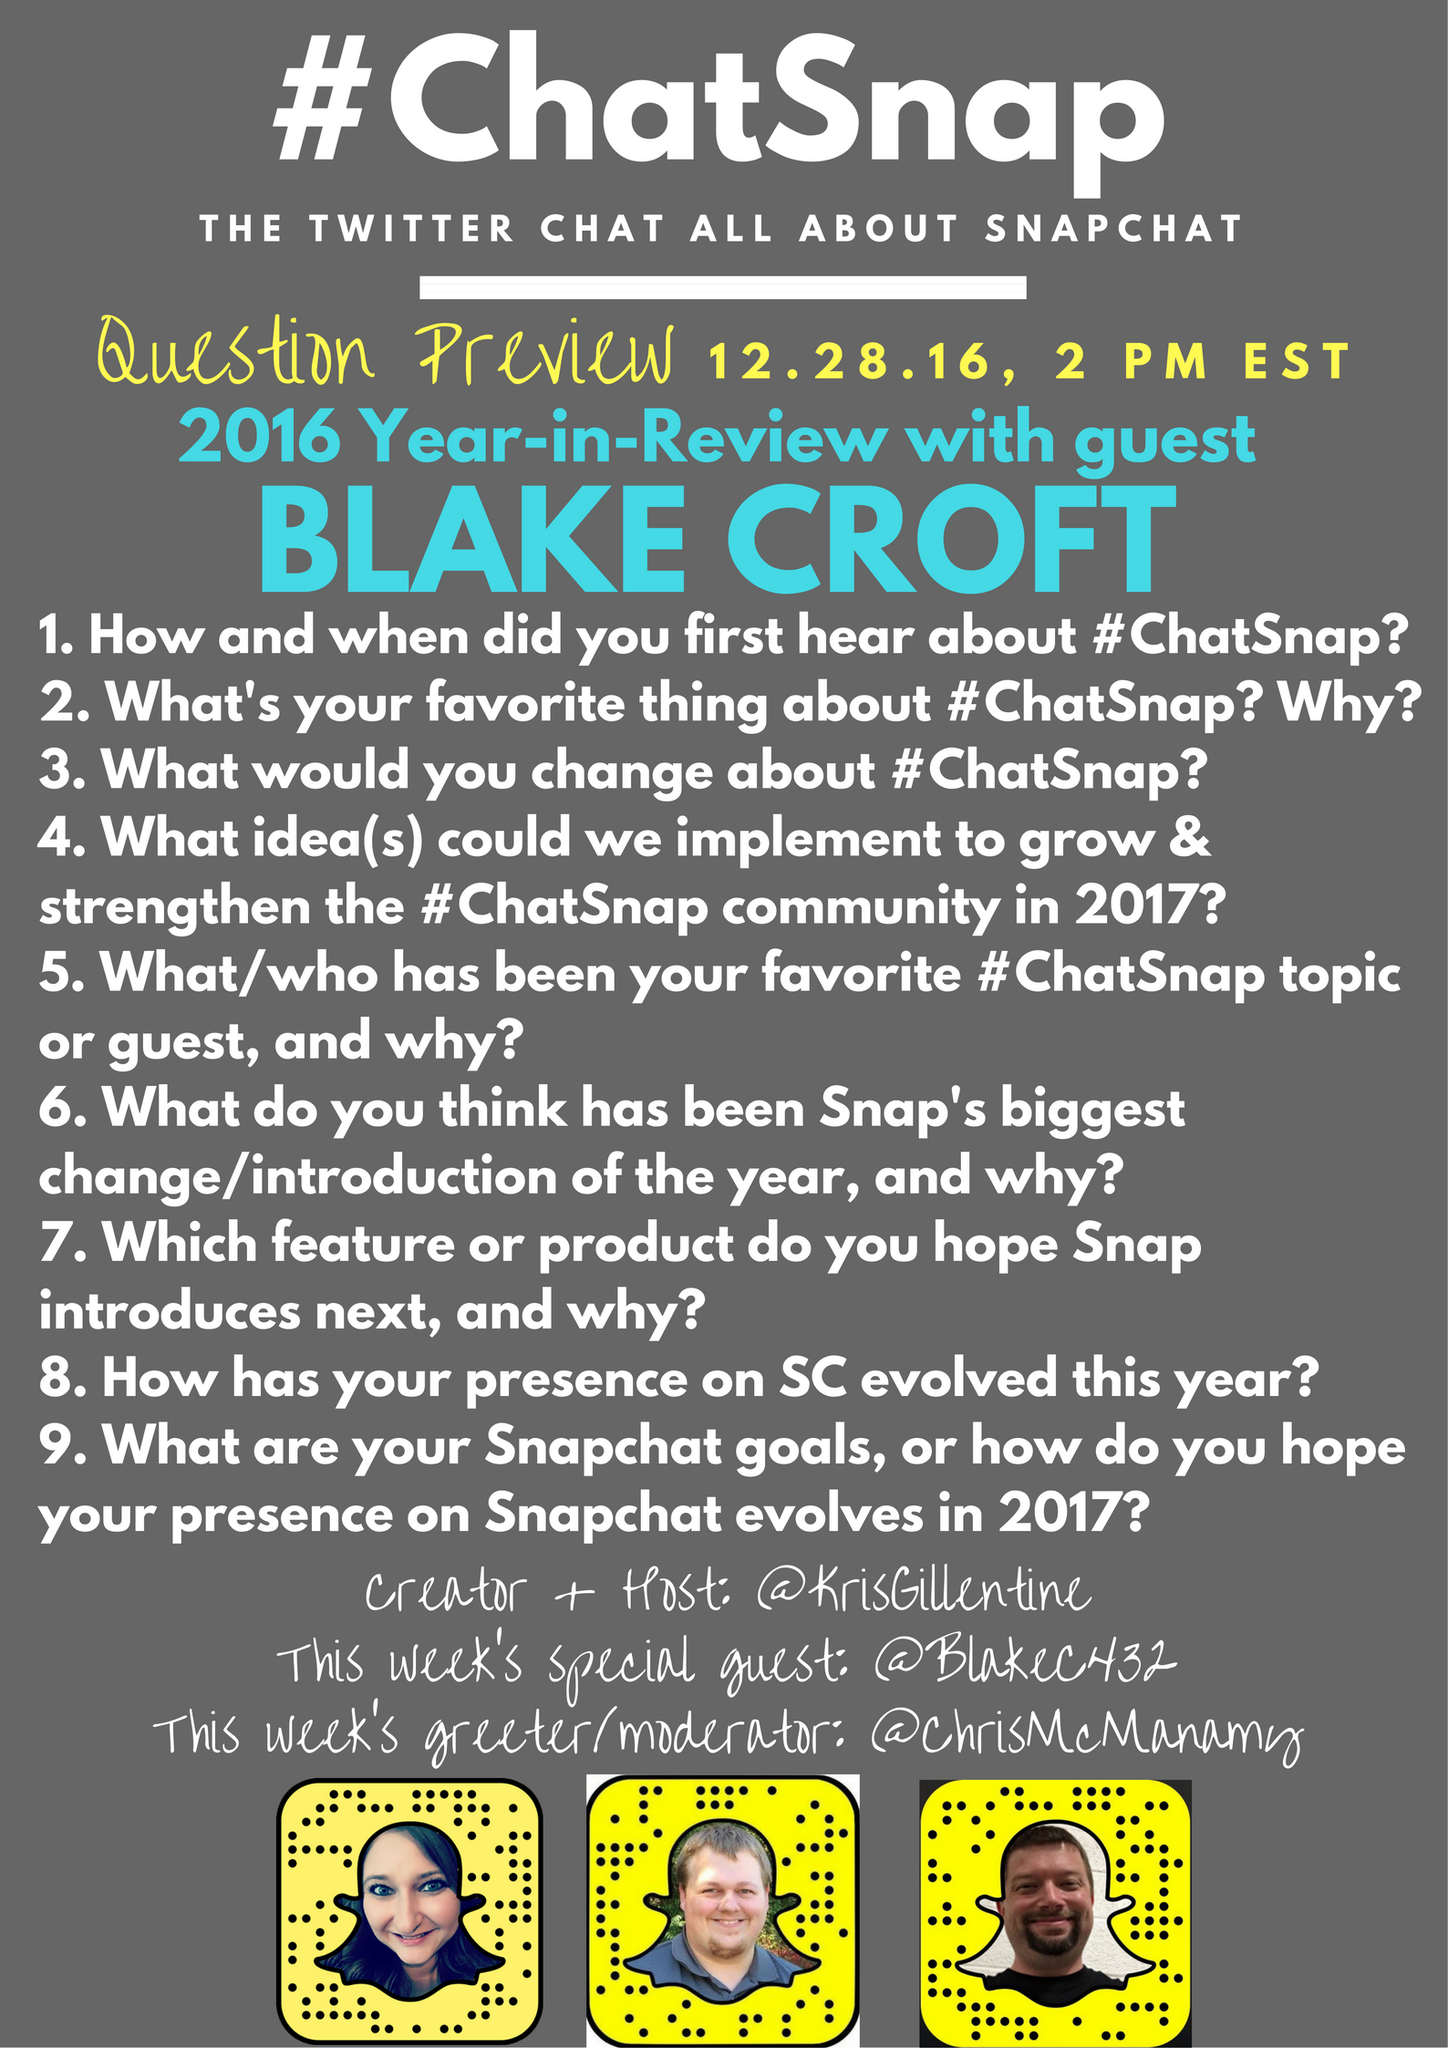 The final #ChatSnap of 2016 starts in 5 minutes...Please invite your friends!! Here's a look at today's questions! @blakec432 @ChrisMcManamy https://t.co/WNqzRac221